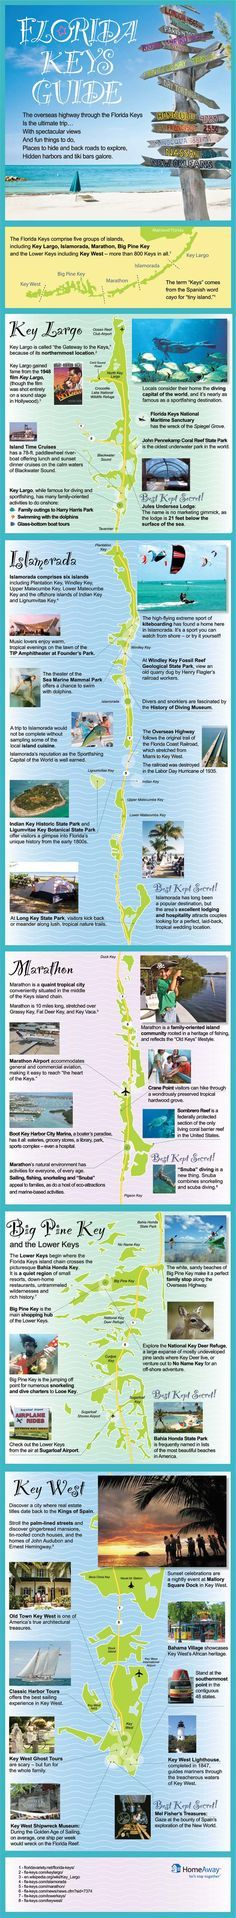 Where to Go in the Florida Keys Infographic | HomeAway Travel Ideas